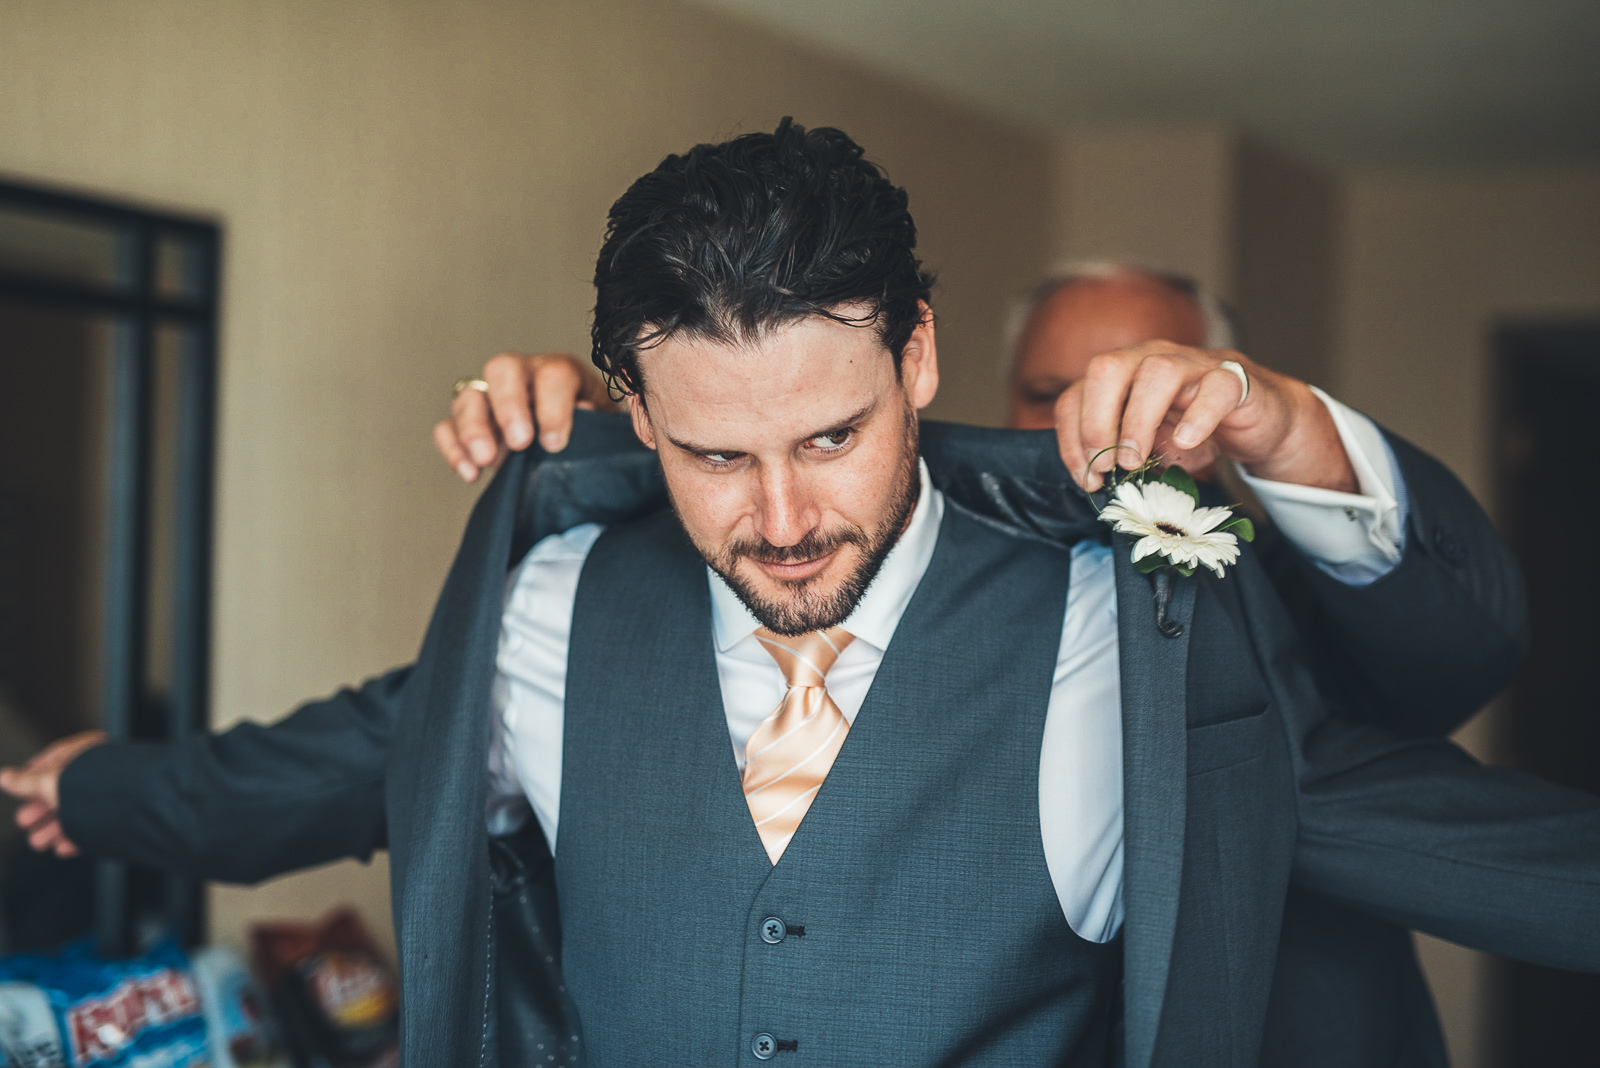 14 groom getting dressed